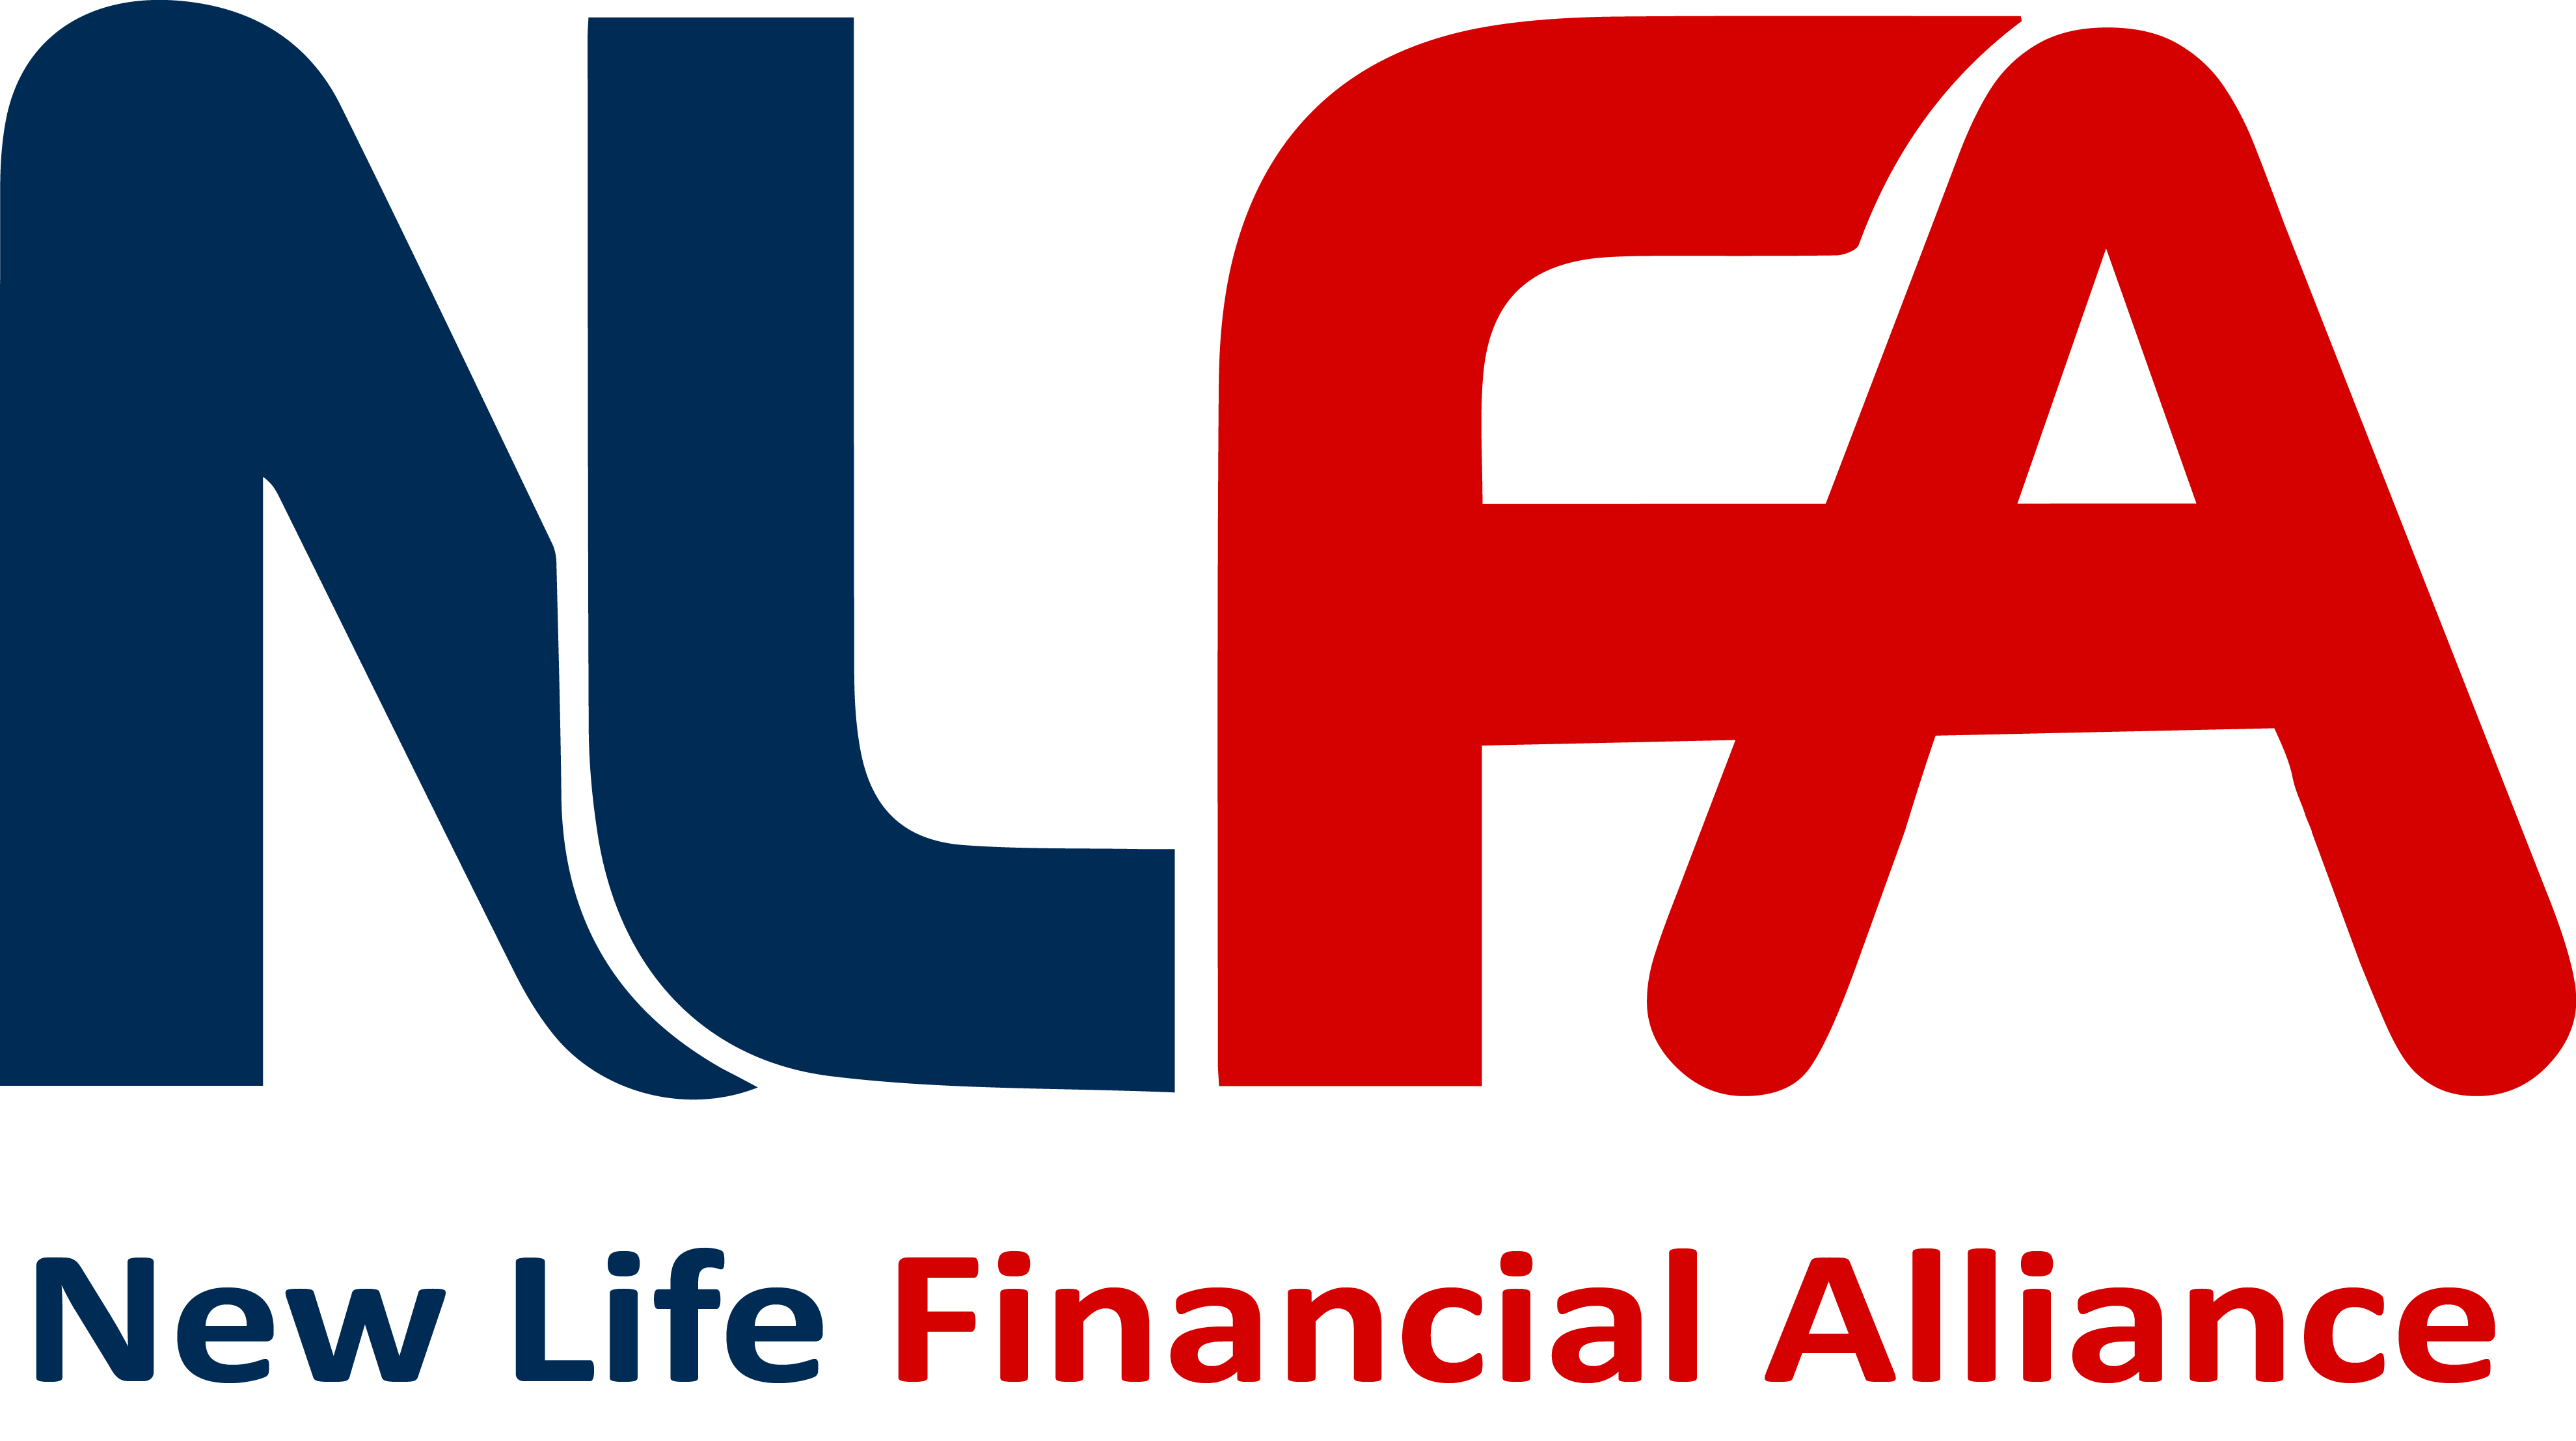 New Life Financial Alliance